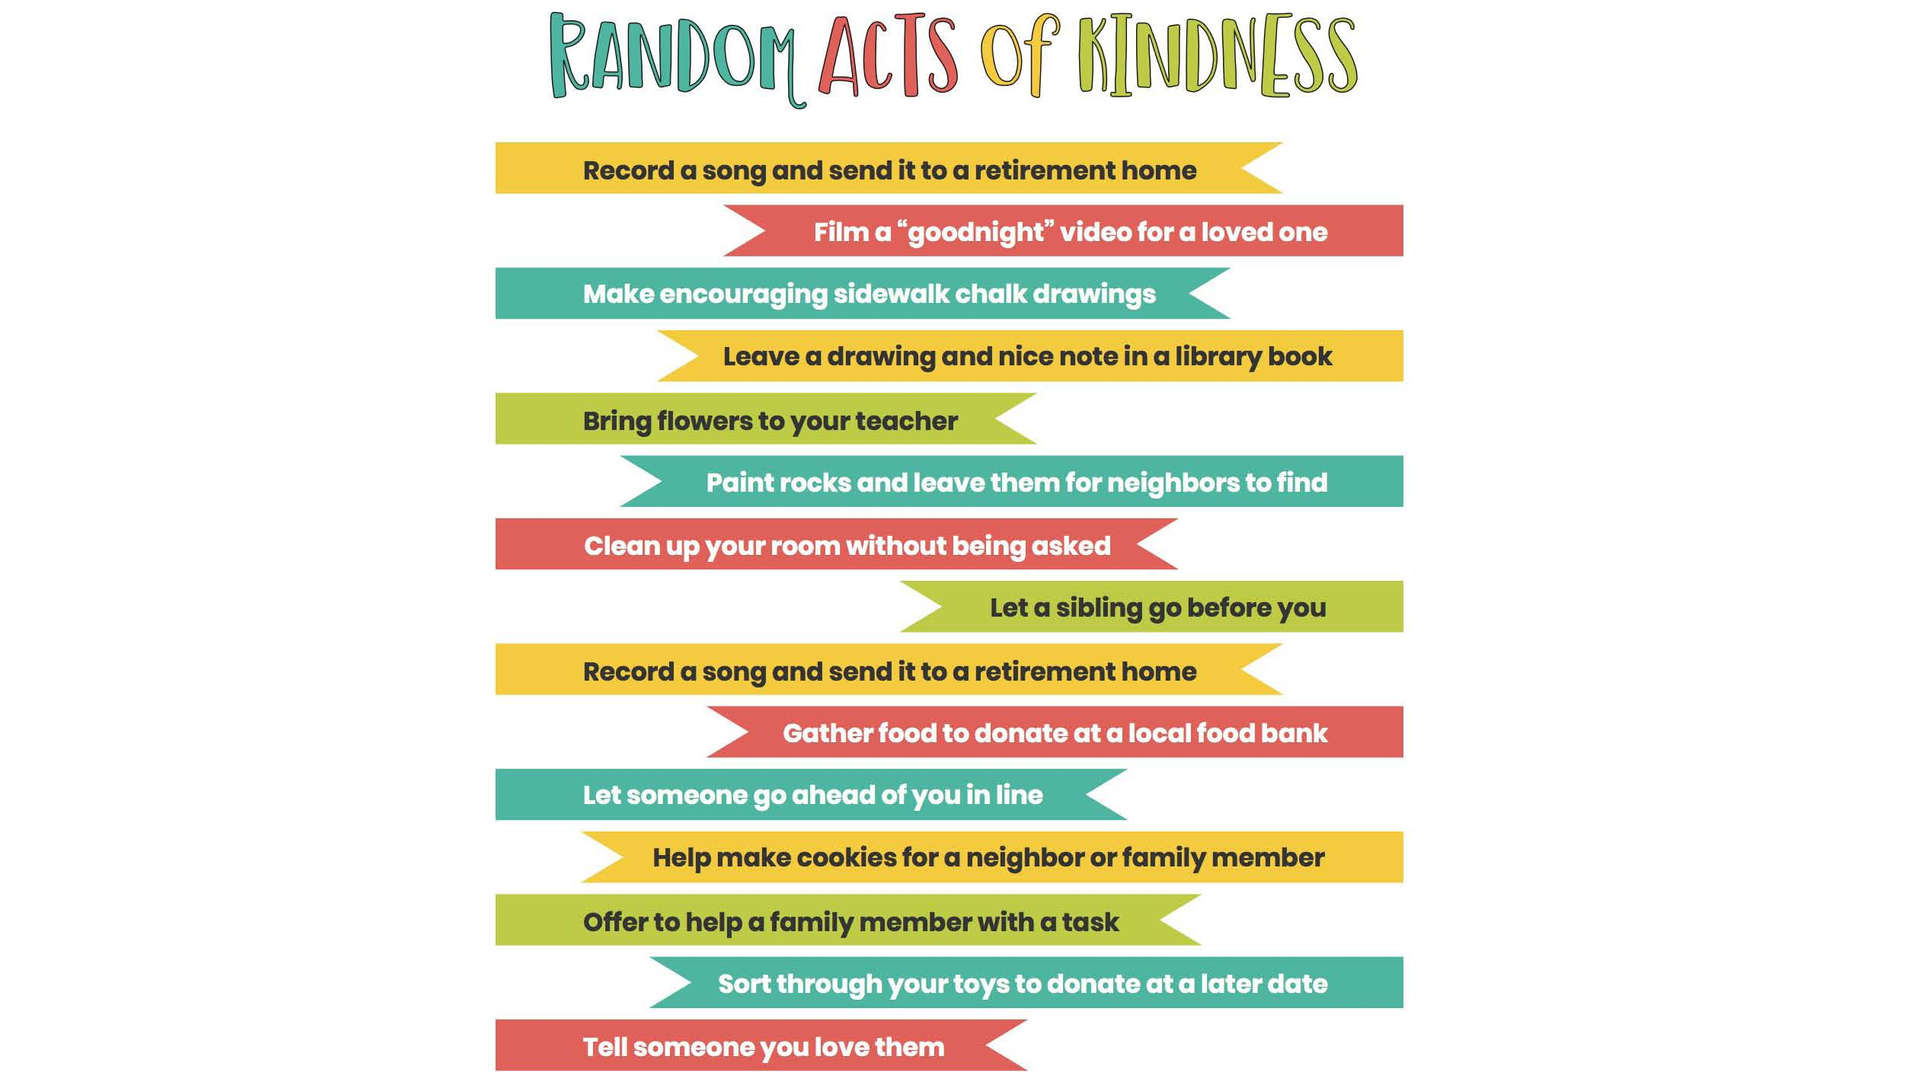 Examples of Social Distancing and Random Acts of Kindness